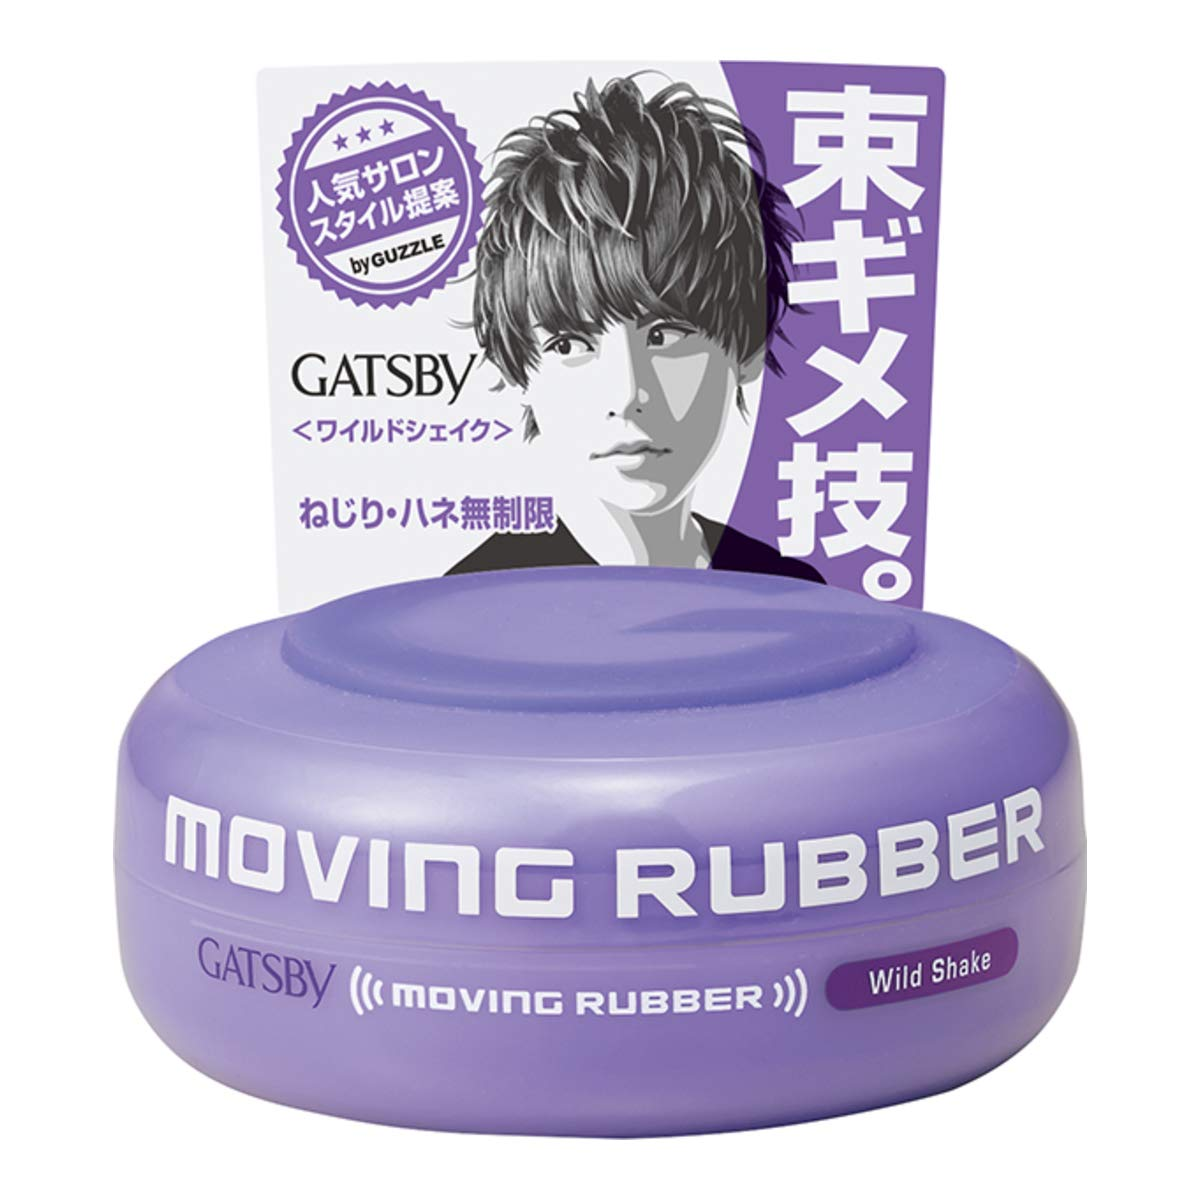 gatsby moving rubber spiky edge review